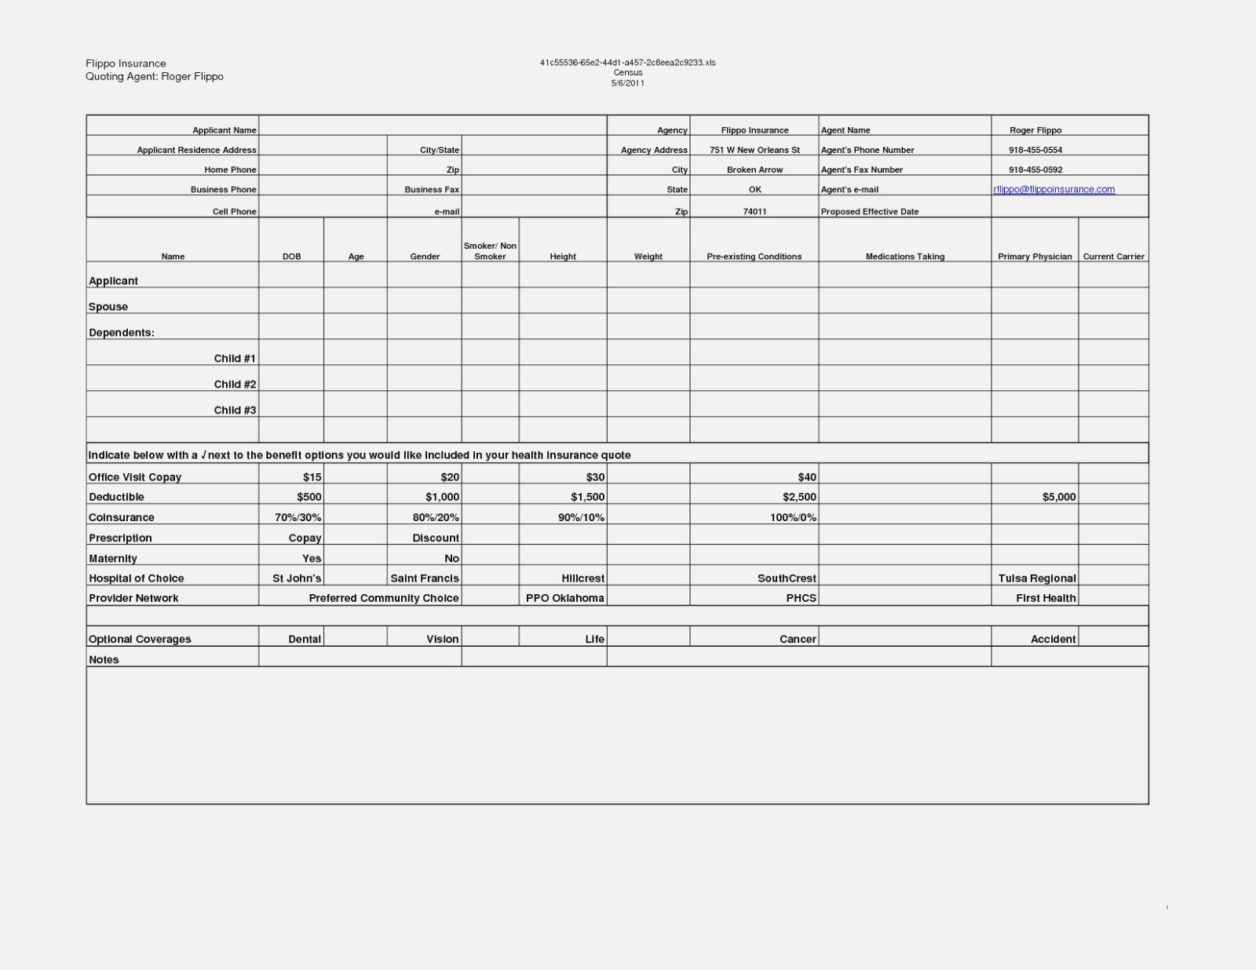 Census Spreadsheet Template Regarding Spreadsheet To Compare Health Insurance Quotes Comparison Template